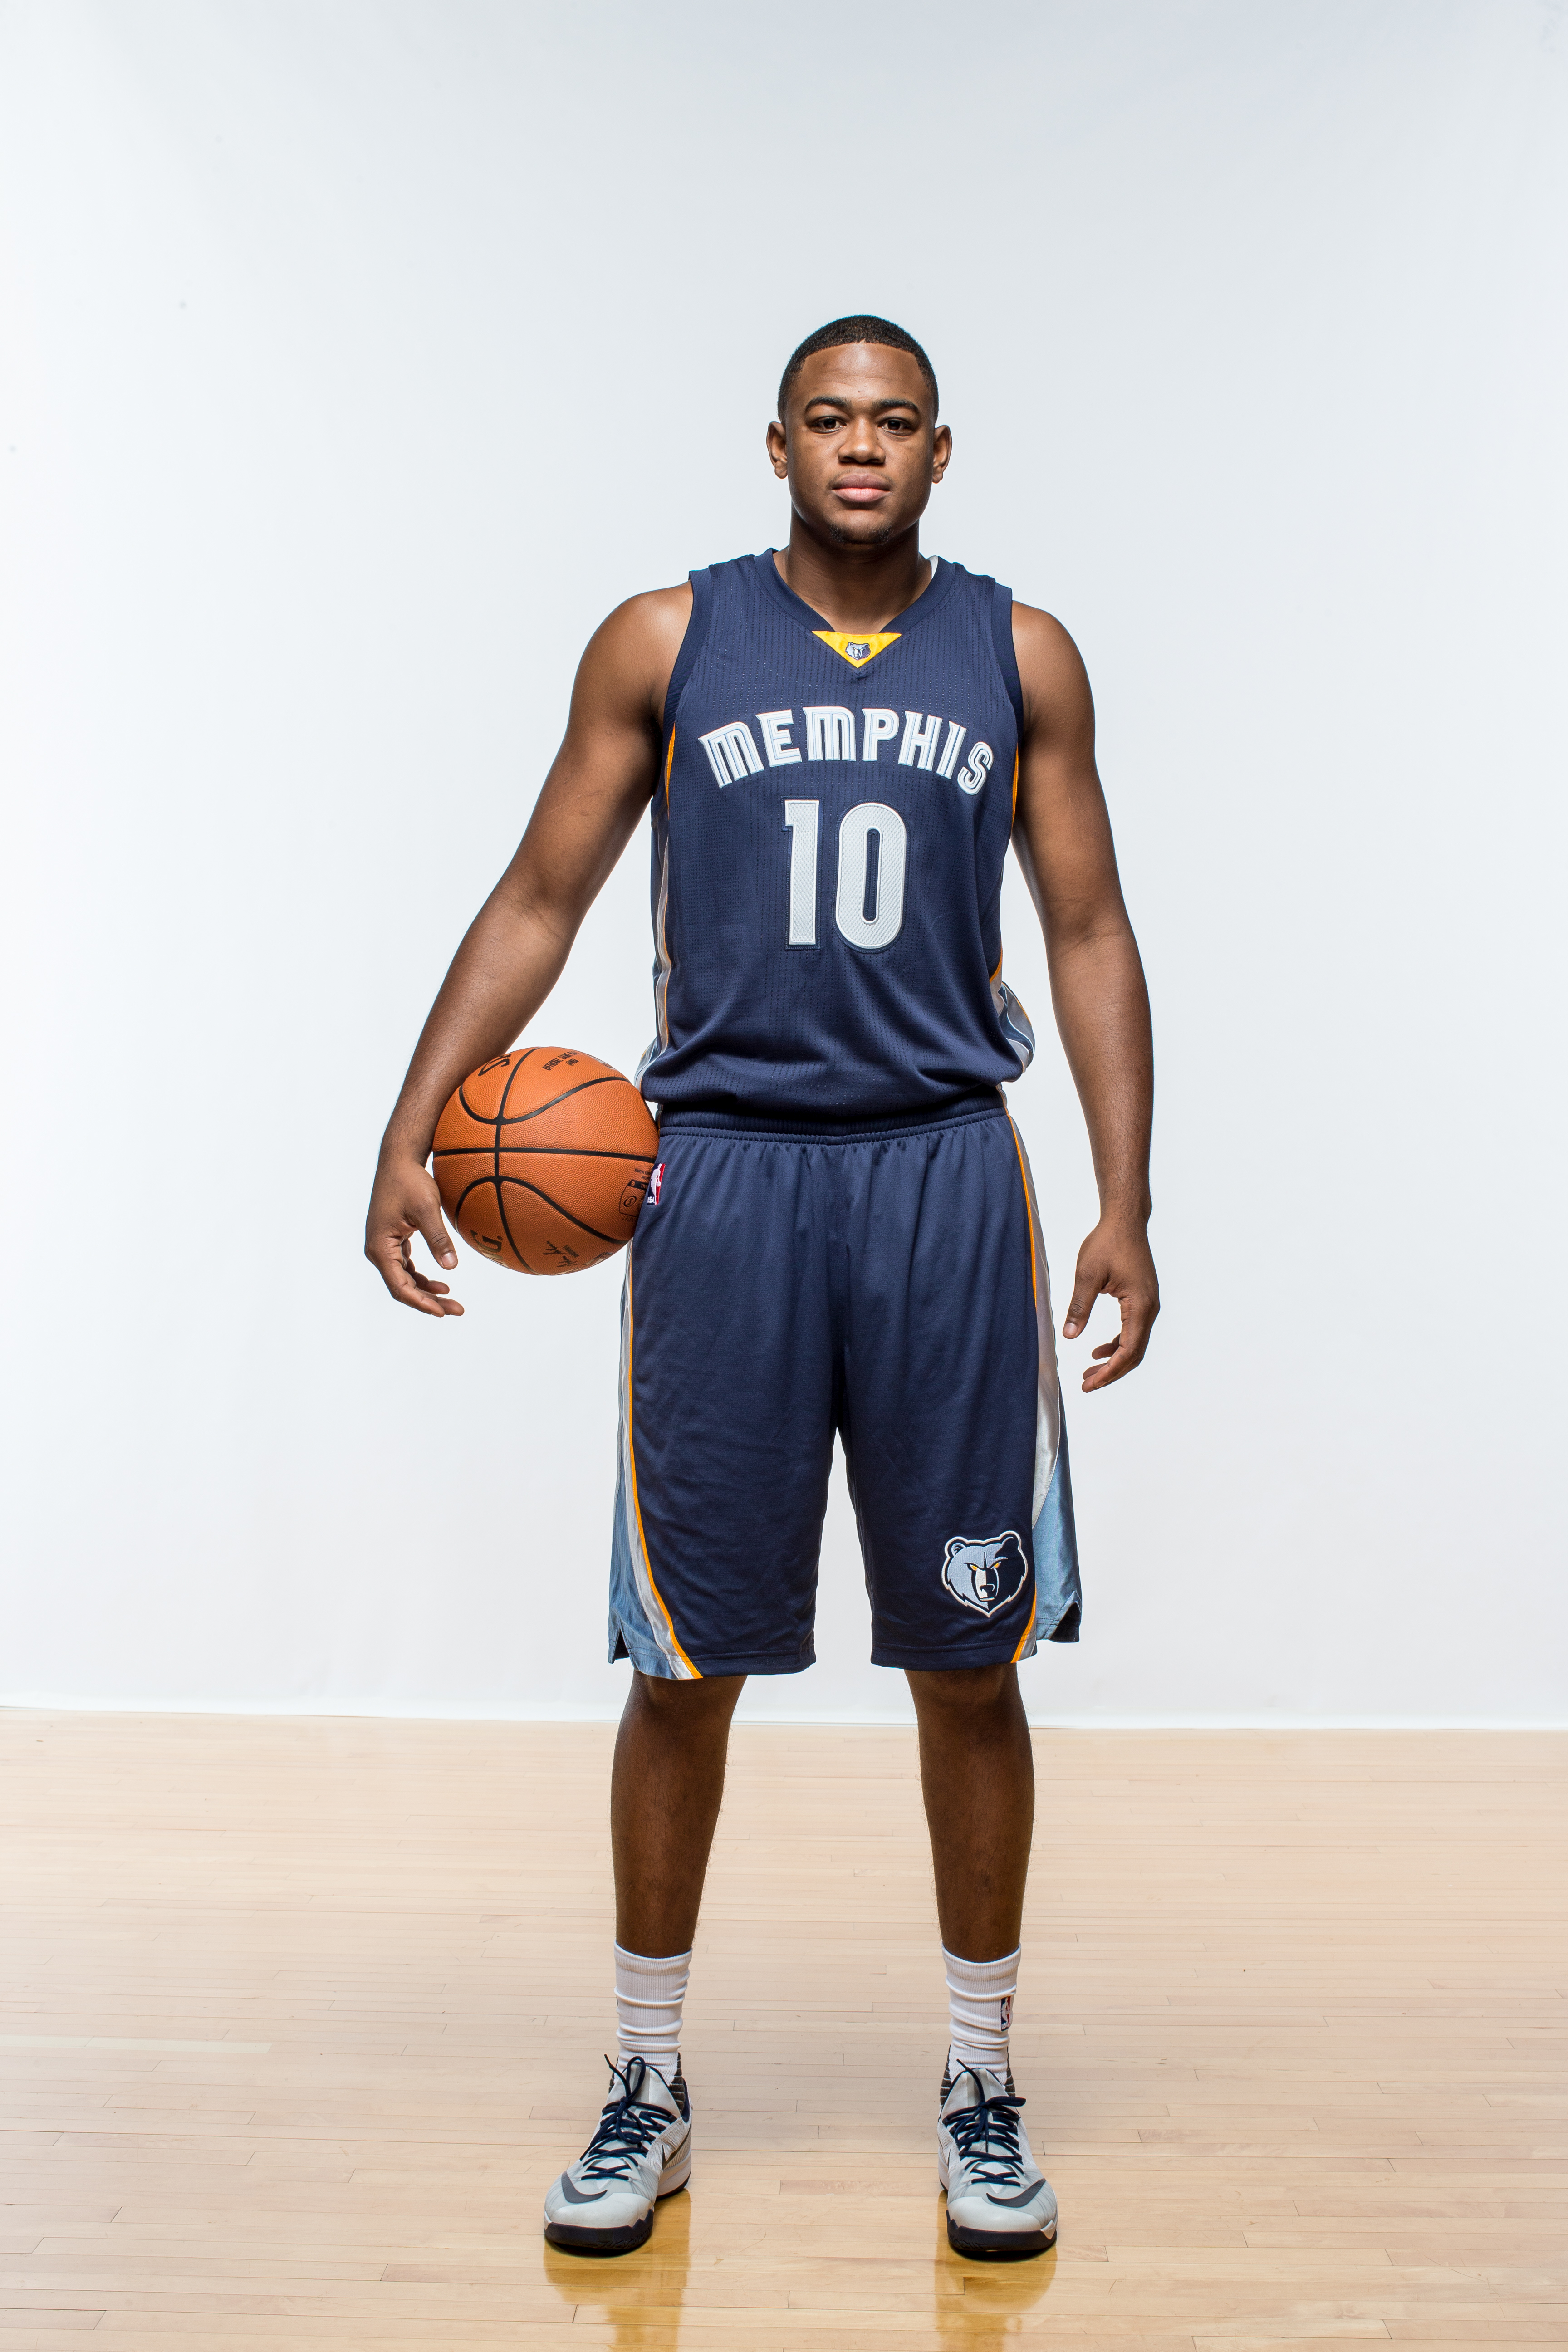 TARRYTOWN, NY - AUGUST 08:  Jarrell Martin #10 of the Memphis Grizzlies poses for a portrait during the 2015 NBA rookie photo shoot on August 8, 2015 at the Madison Square Garden Training Facility in Tarrytown, New York. (Photo by Nick Laham/Getty Images)